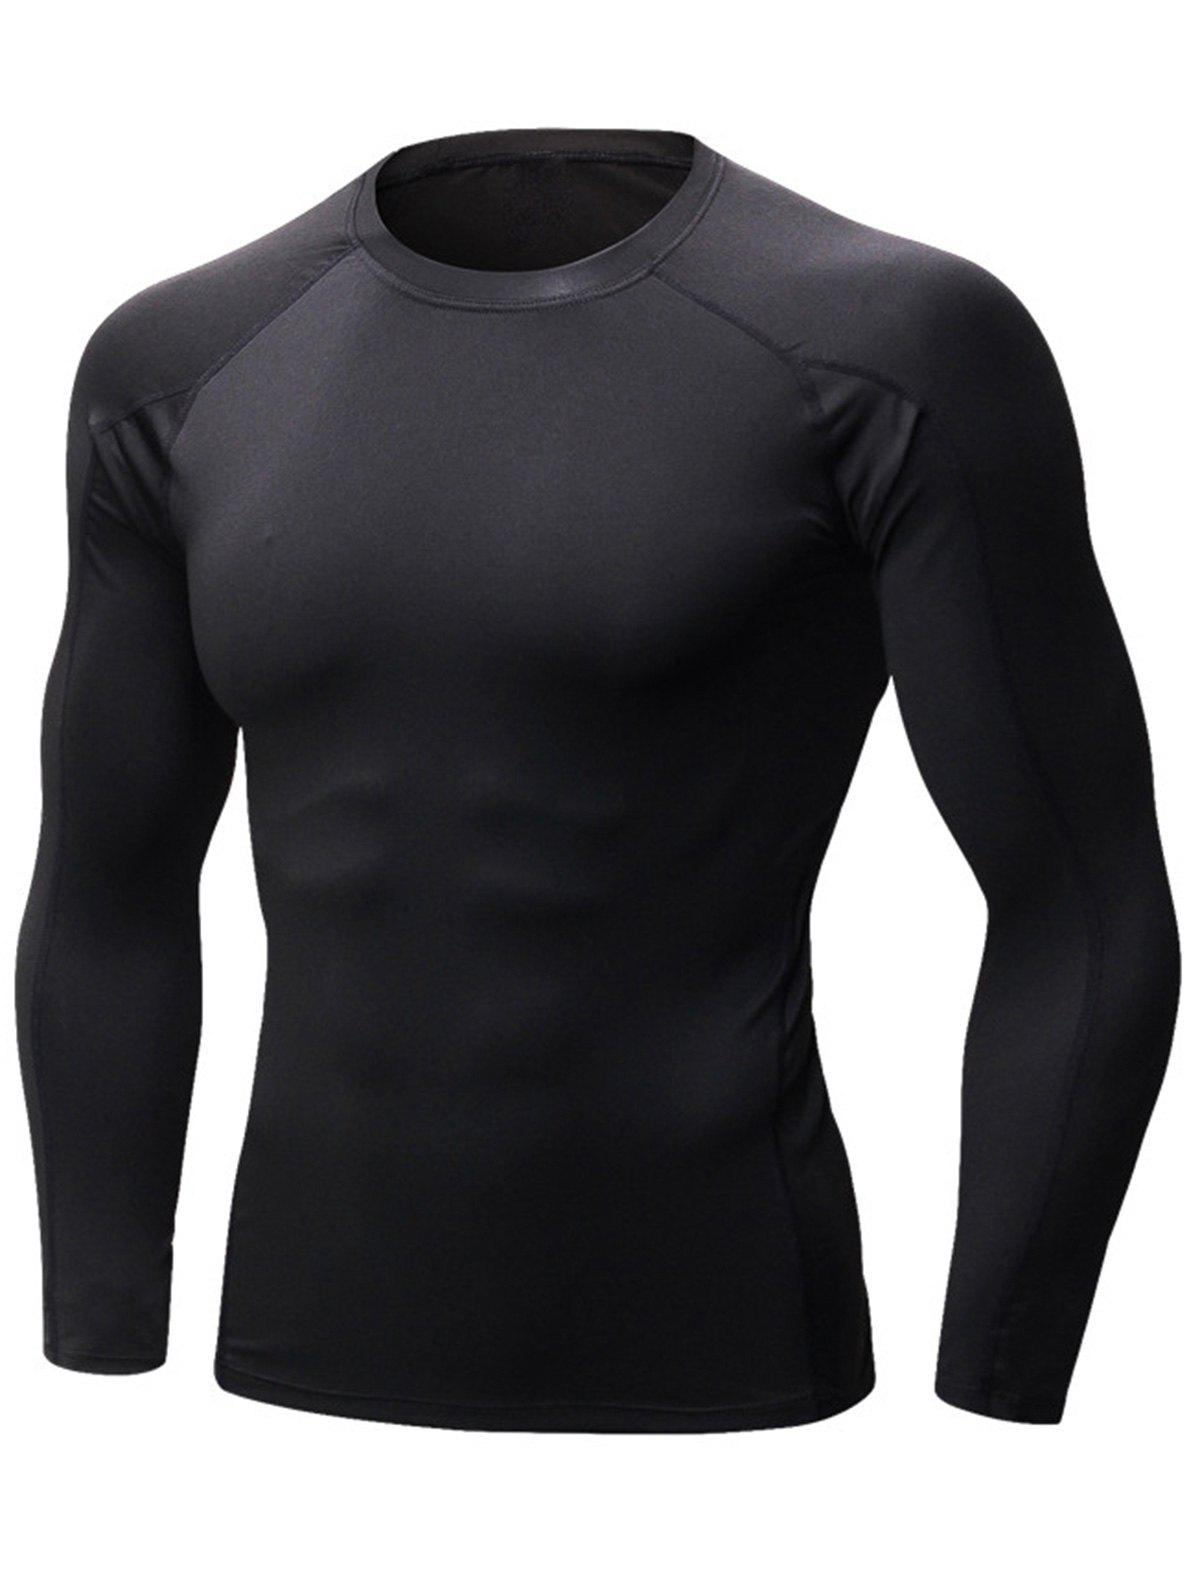 Stretchy Quick Dry Suture Long Sleeve T-shirt - BLACK XL